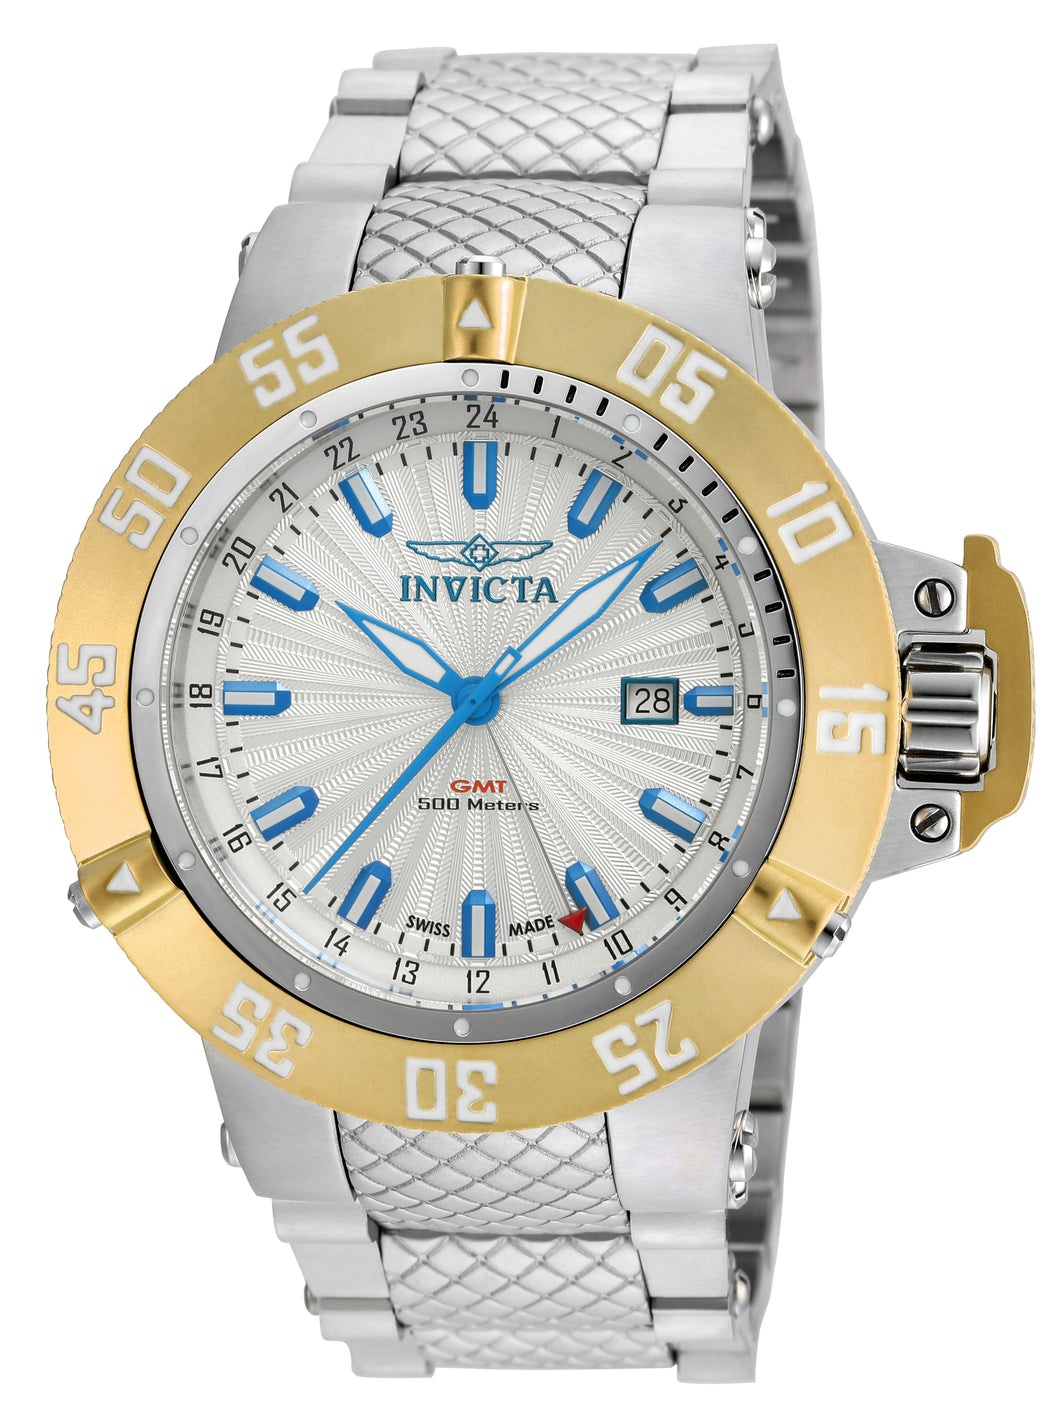 Invicta Men's 21729 Subaqua Quartz 3 Hand Silver Dial Watch